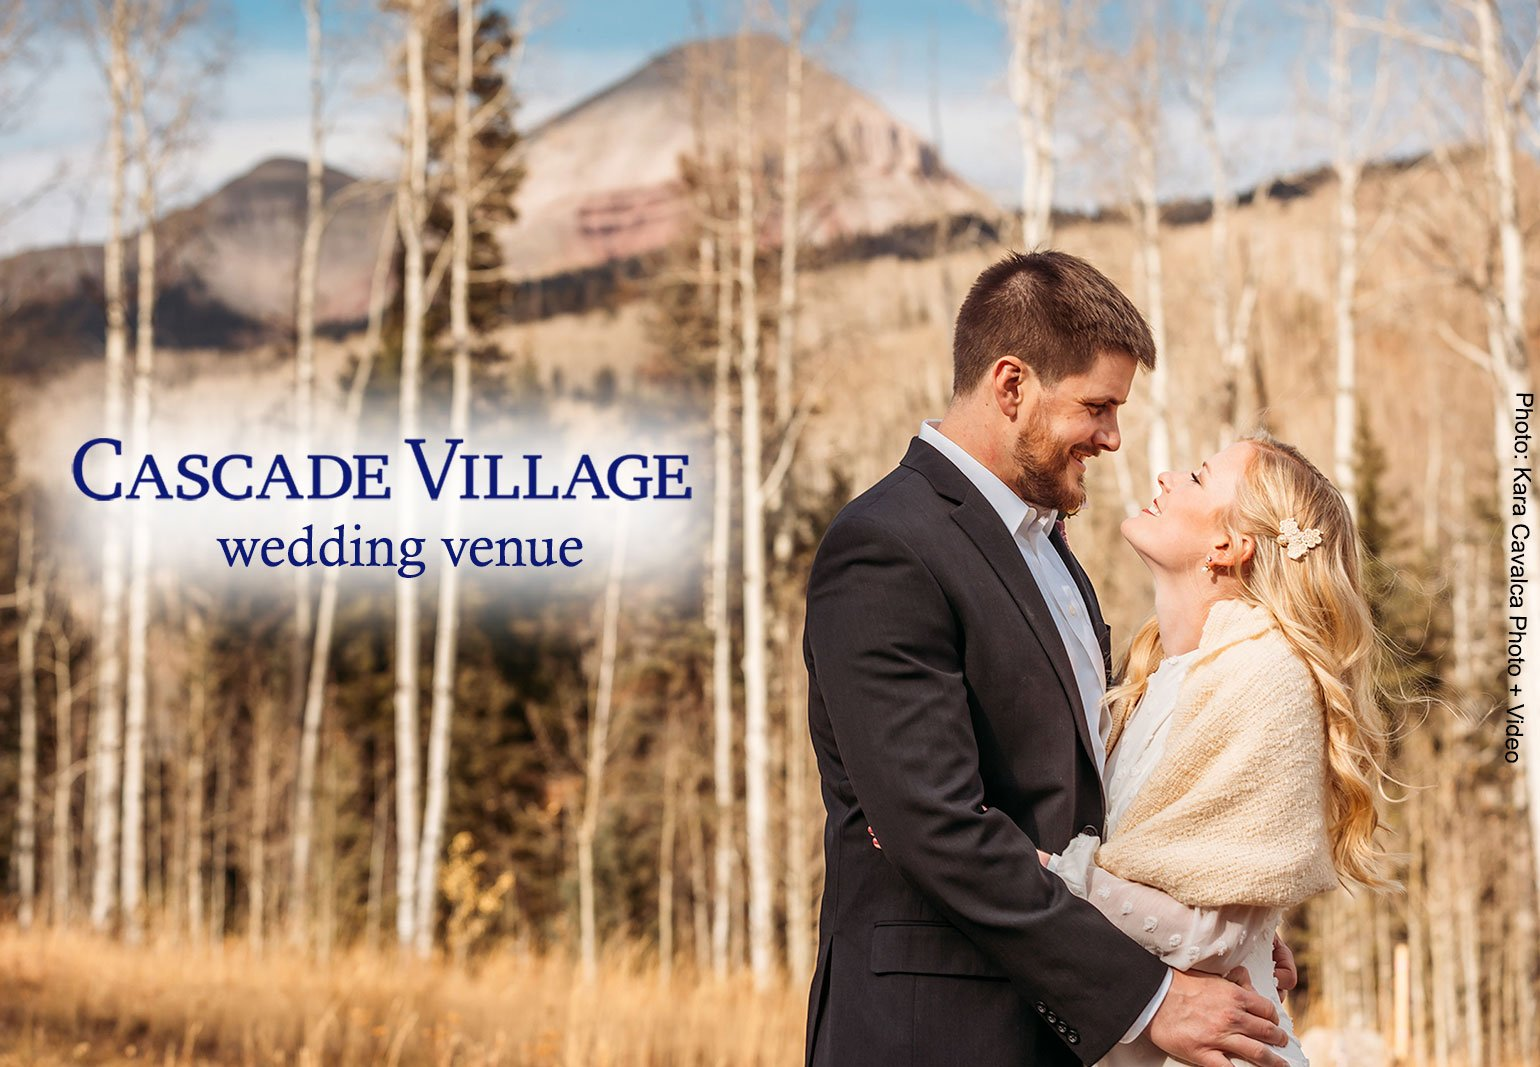 Cascade Village Wedding Venue, Durango Colorado